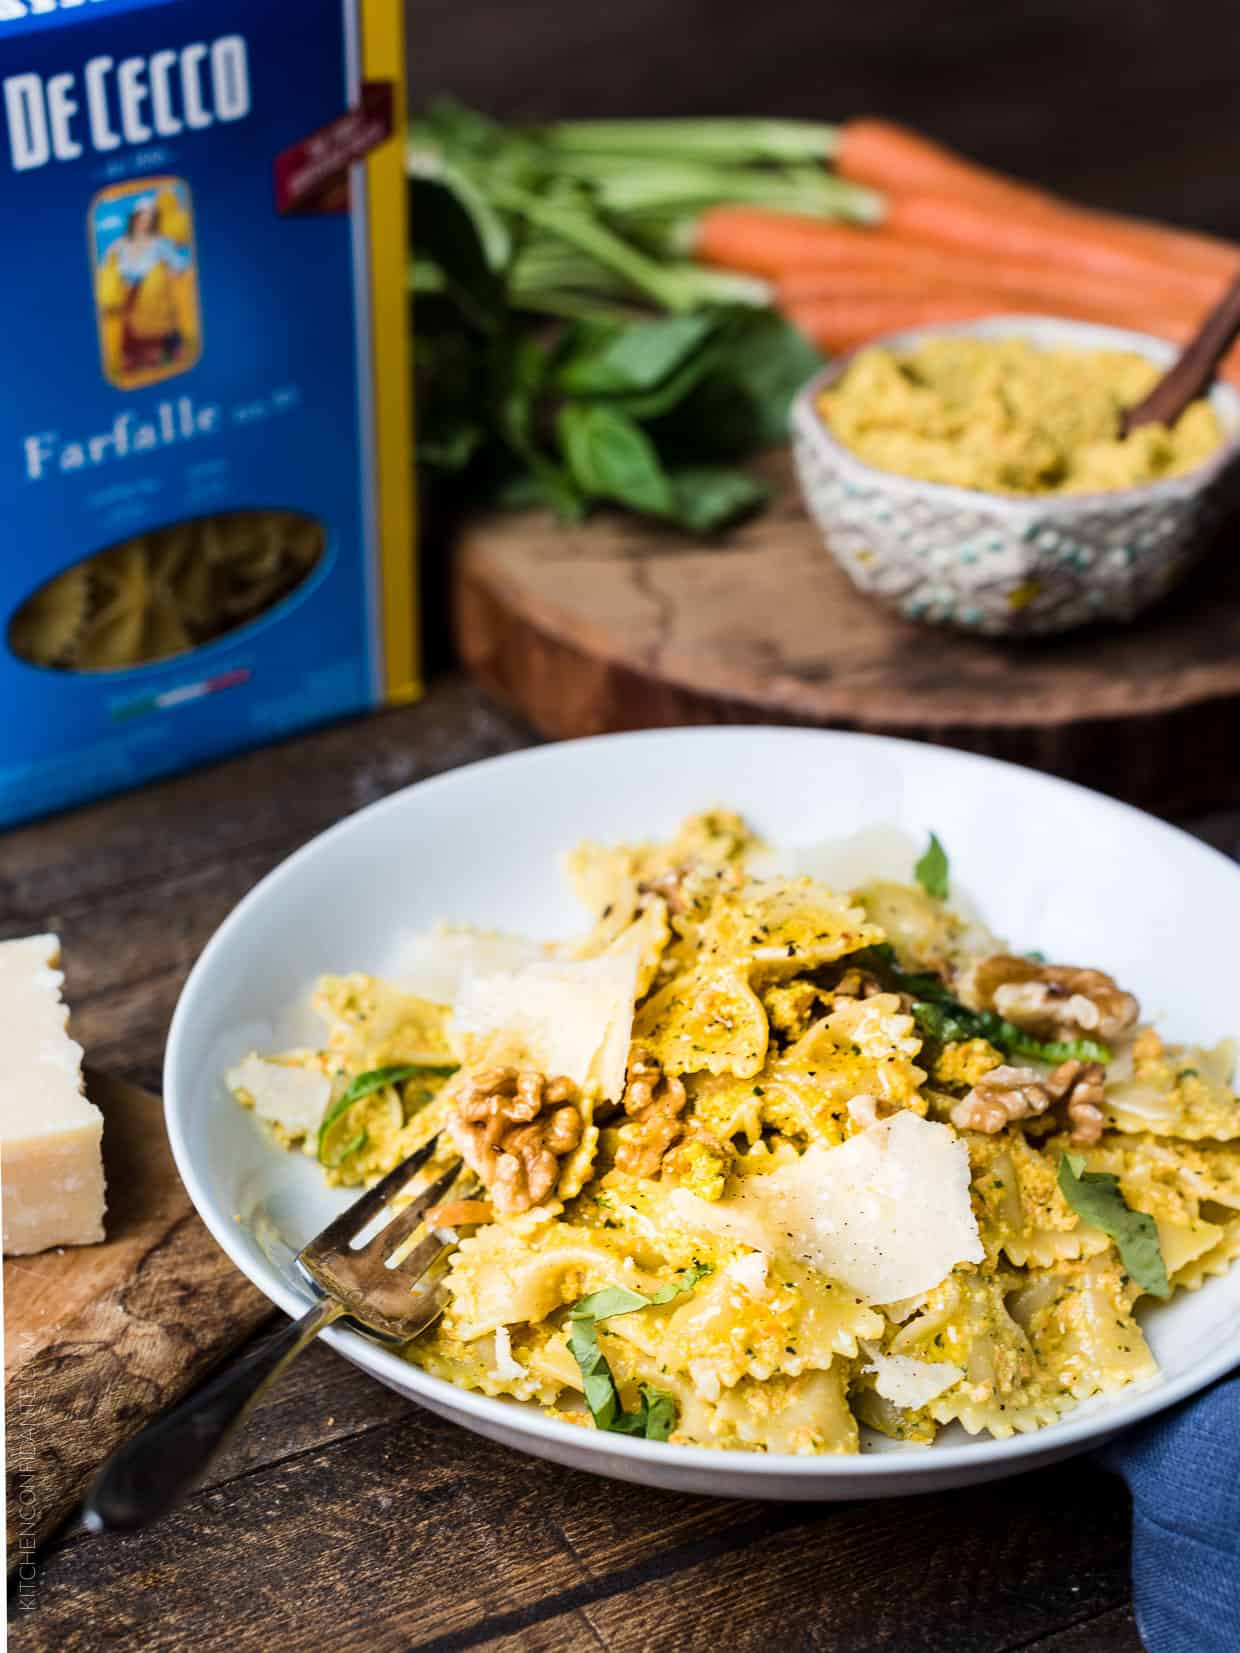 Orange pesto? Yes! You've got to try easy recipe for Farfalle with Roasted Carrot Pesto, Parmesan and Toasted Walnuts!